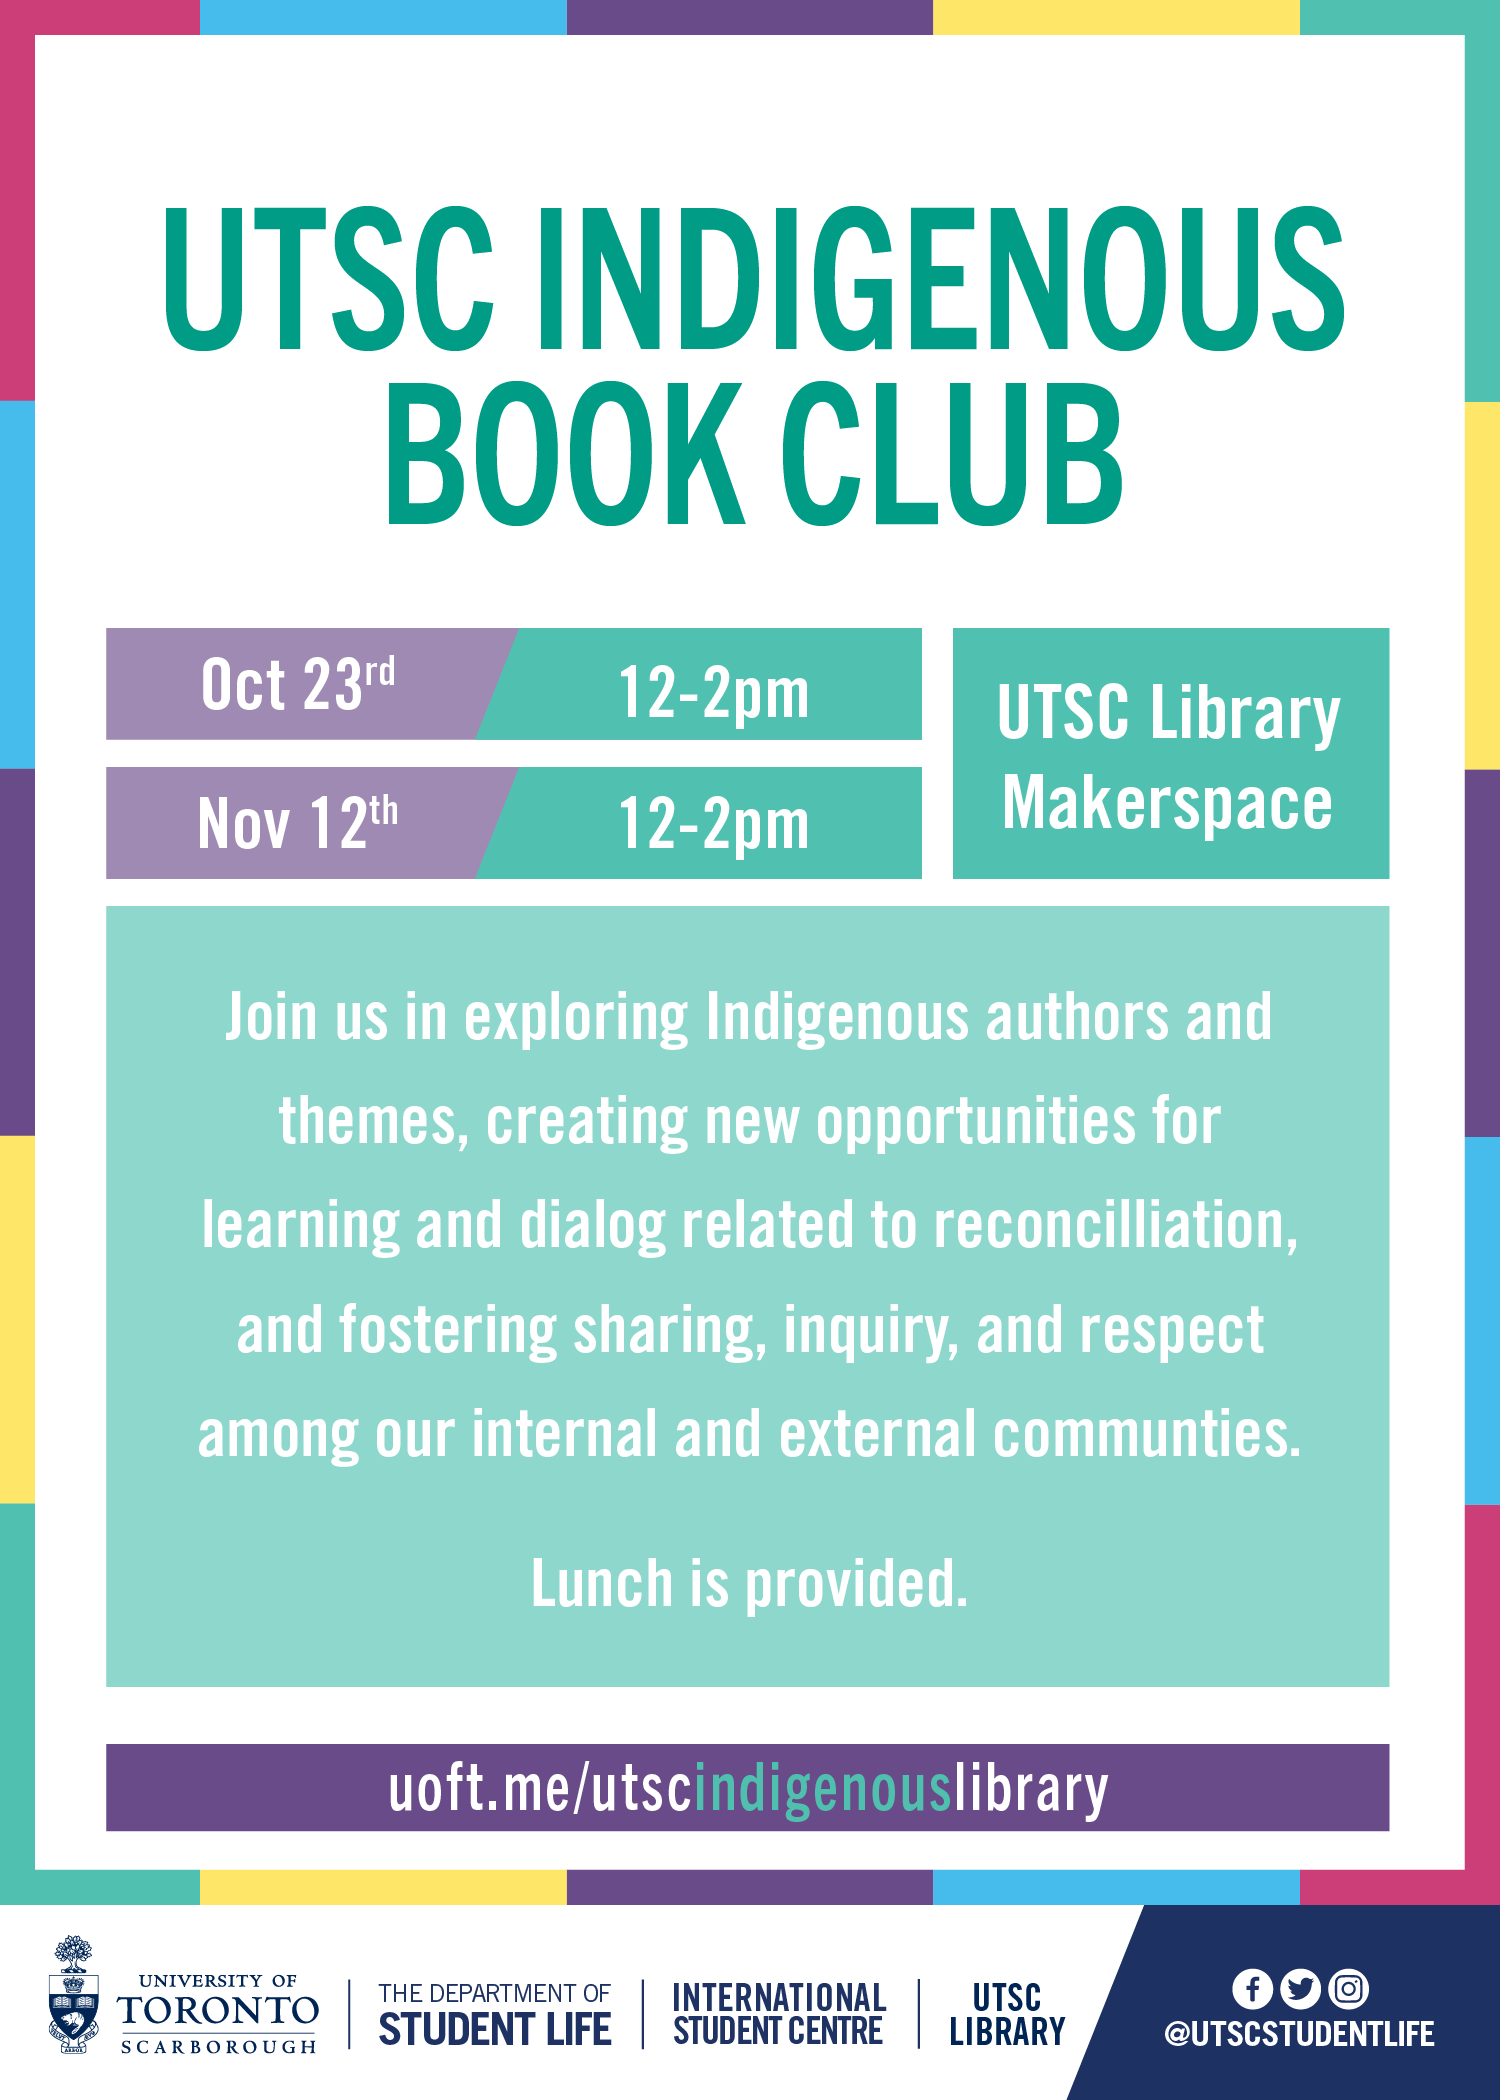 Indigenous Book Club dates October 23 & November 12, 2019, 12-2pm in the Library Makerspace